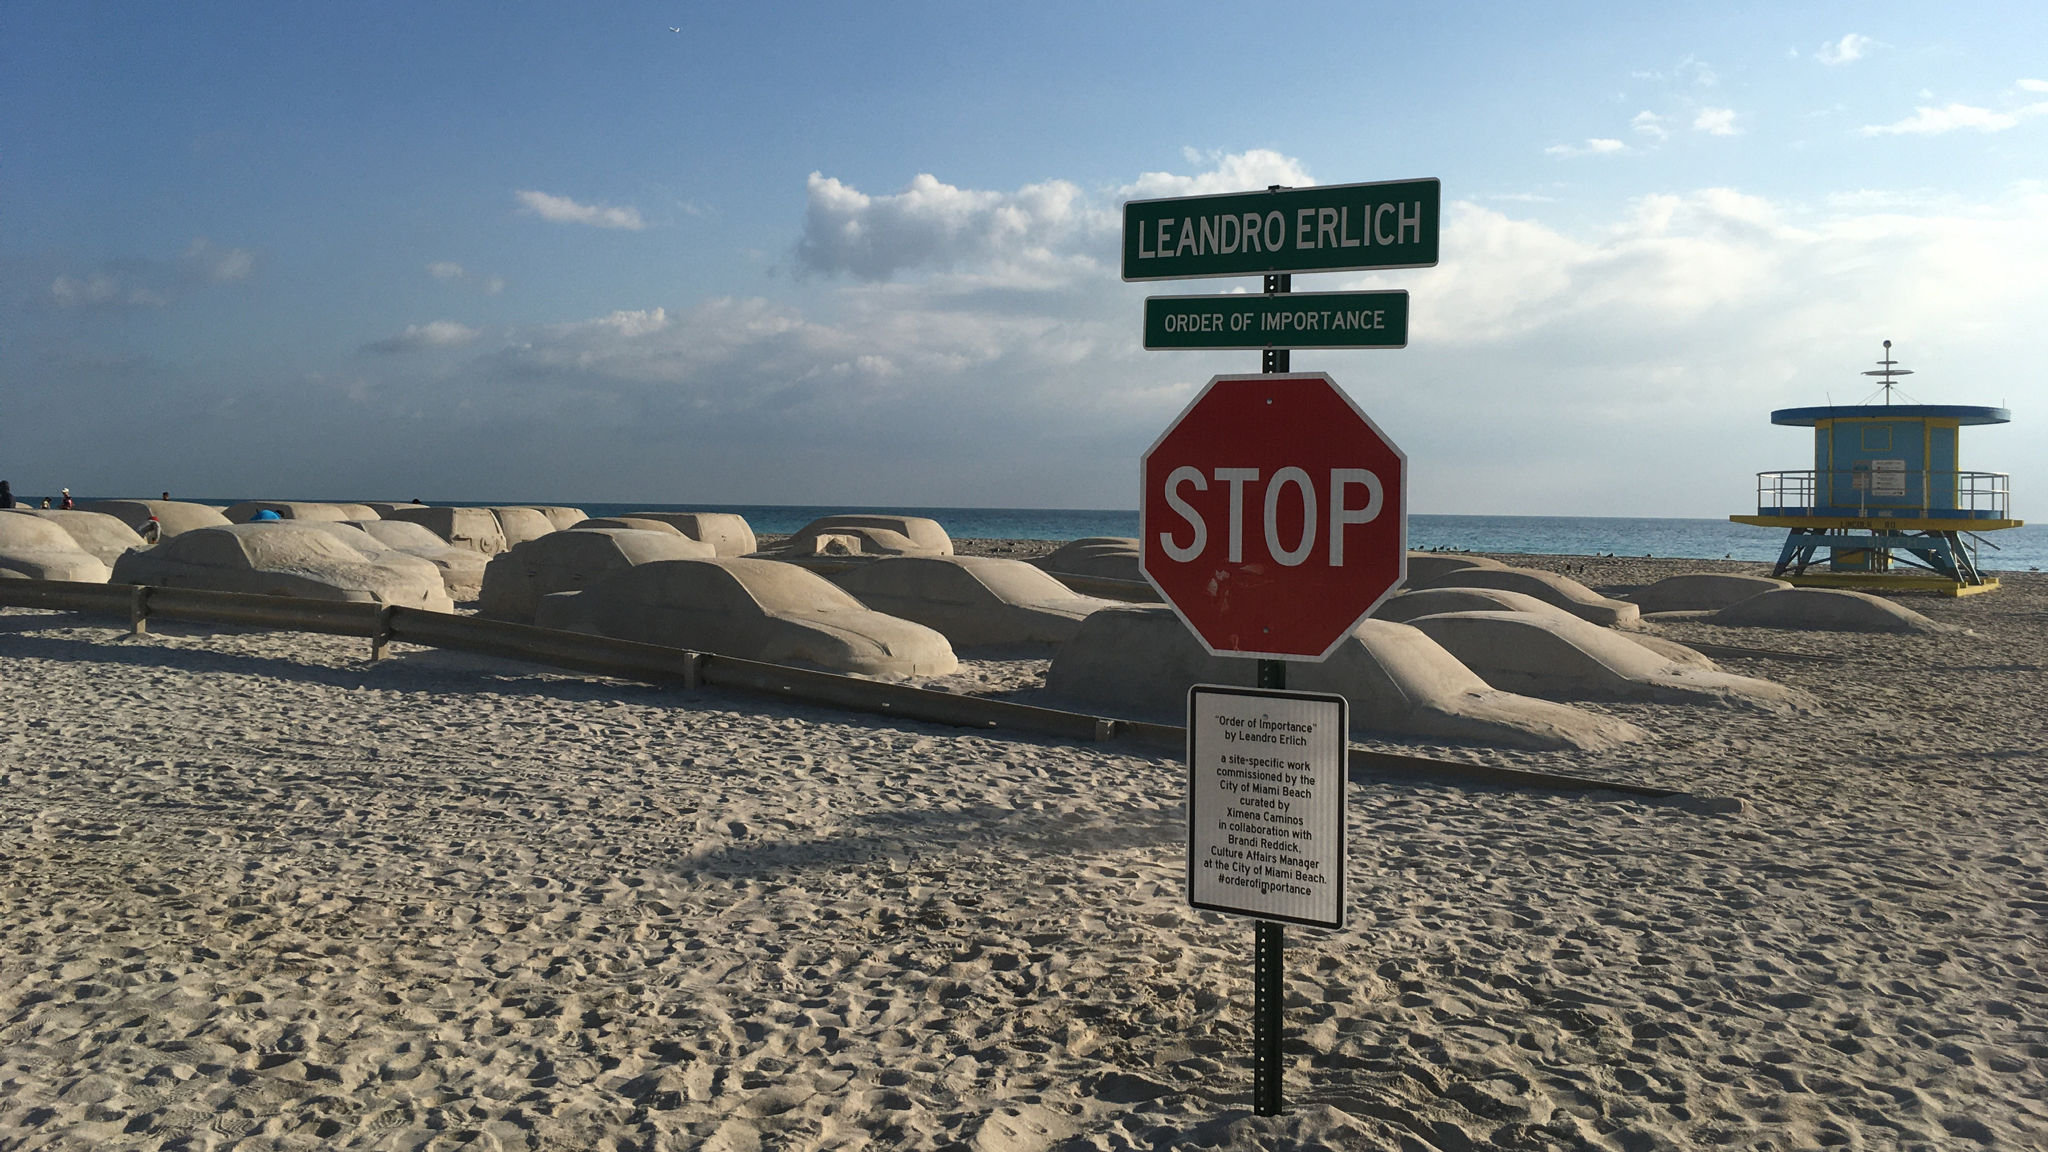 Rallying cry about climate change comes to Miami Beach